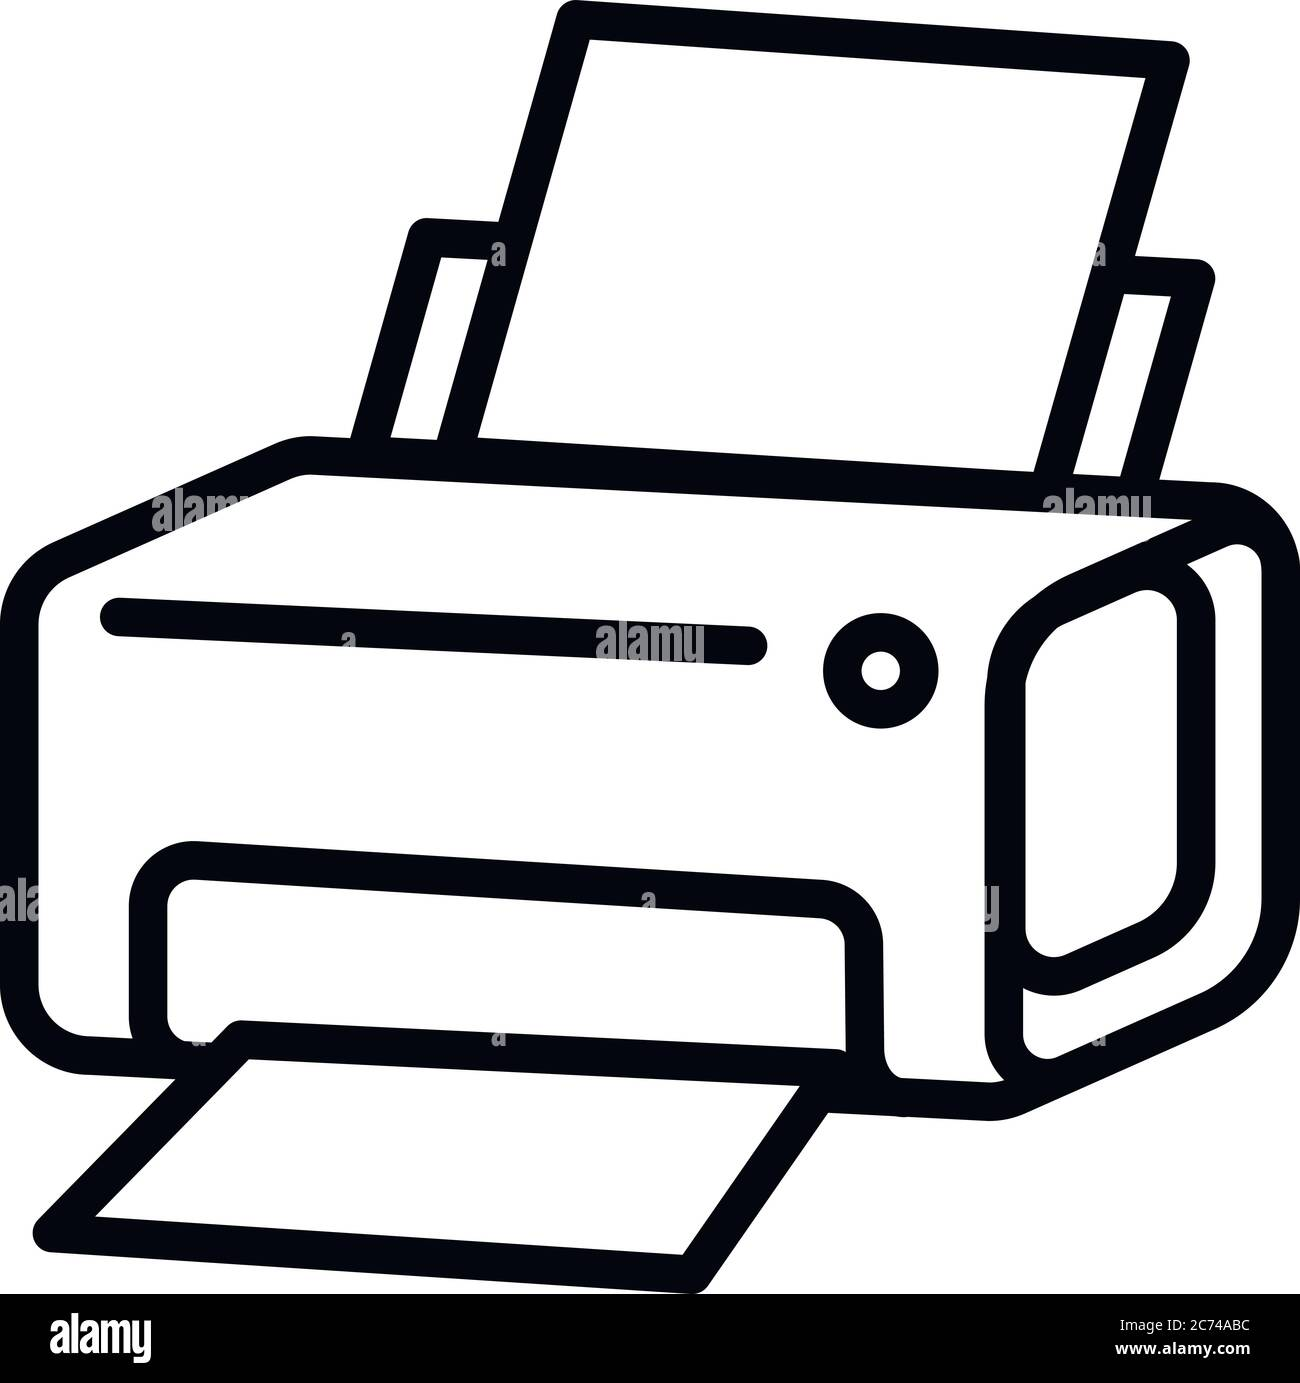 laser printer icon outline laser printer vector icon for web design isolated on white background stock vector image art alamy https www alamy com laser printer icon outline laser printer vector icon for web design isolated on white background image365816288 html